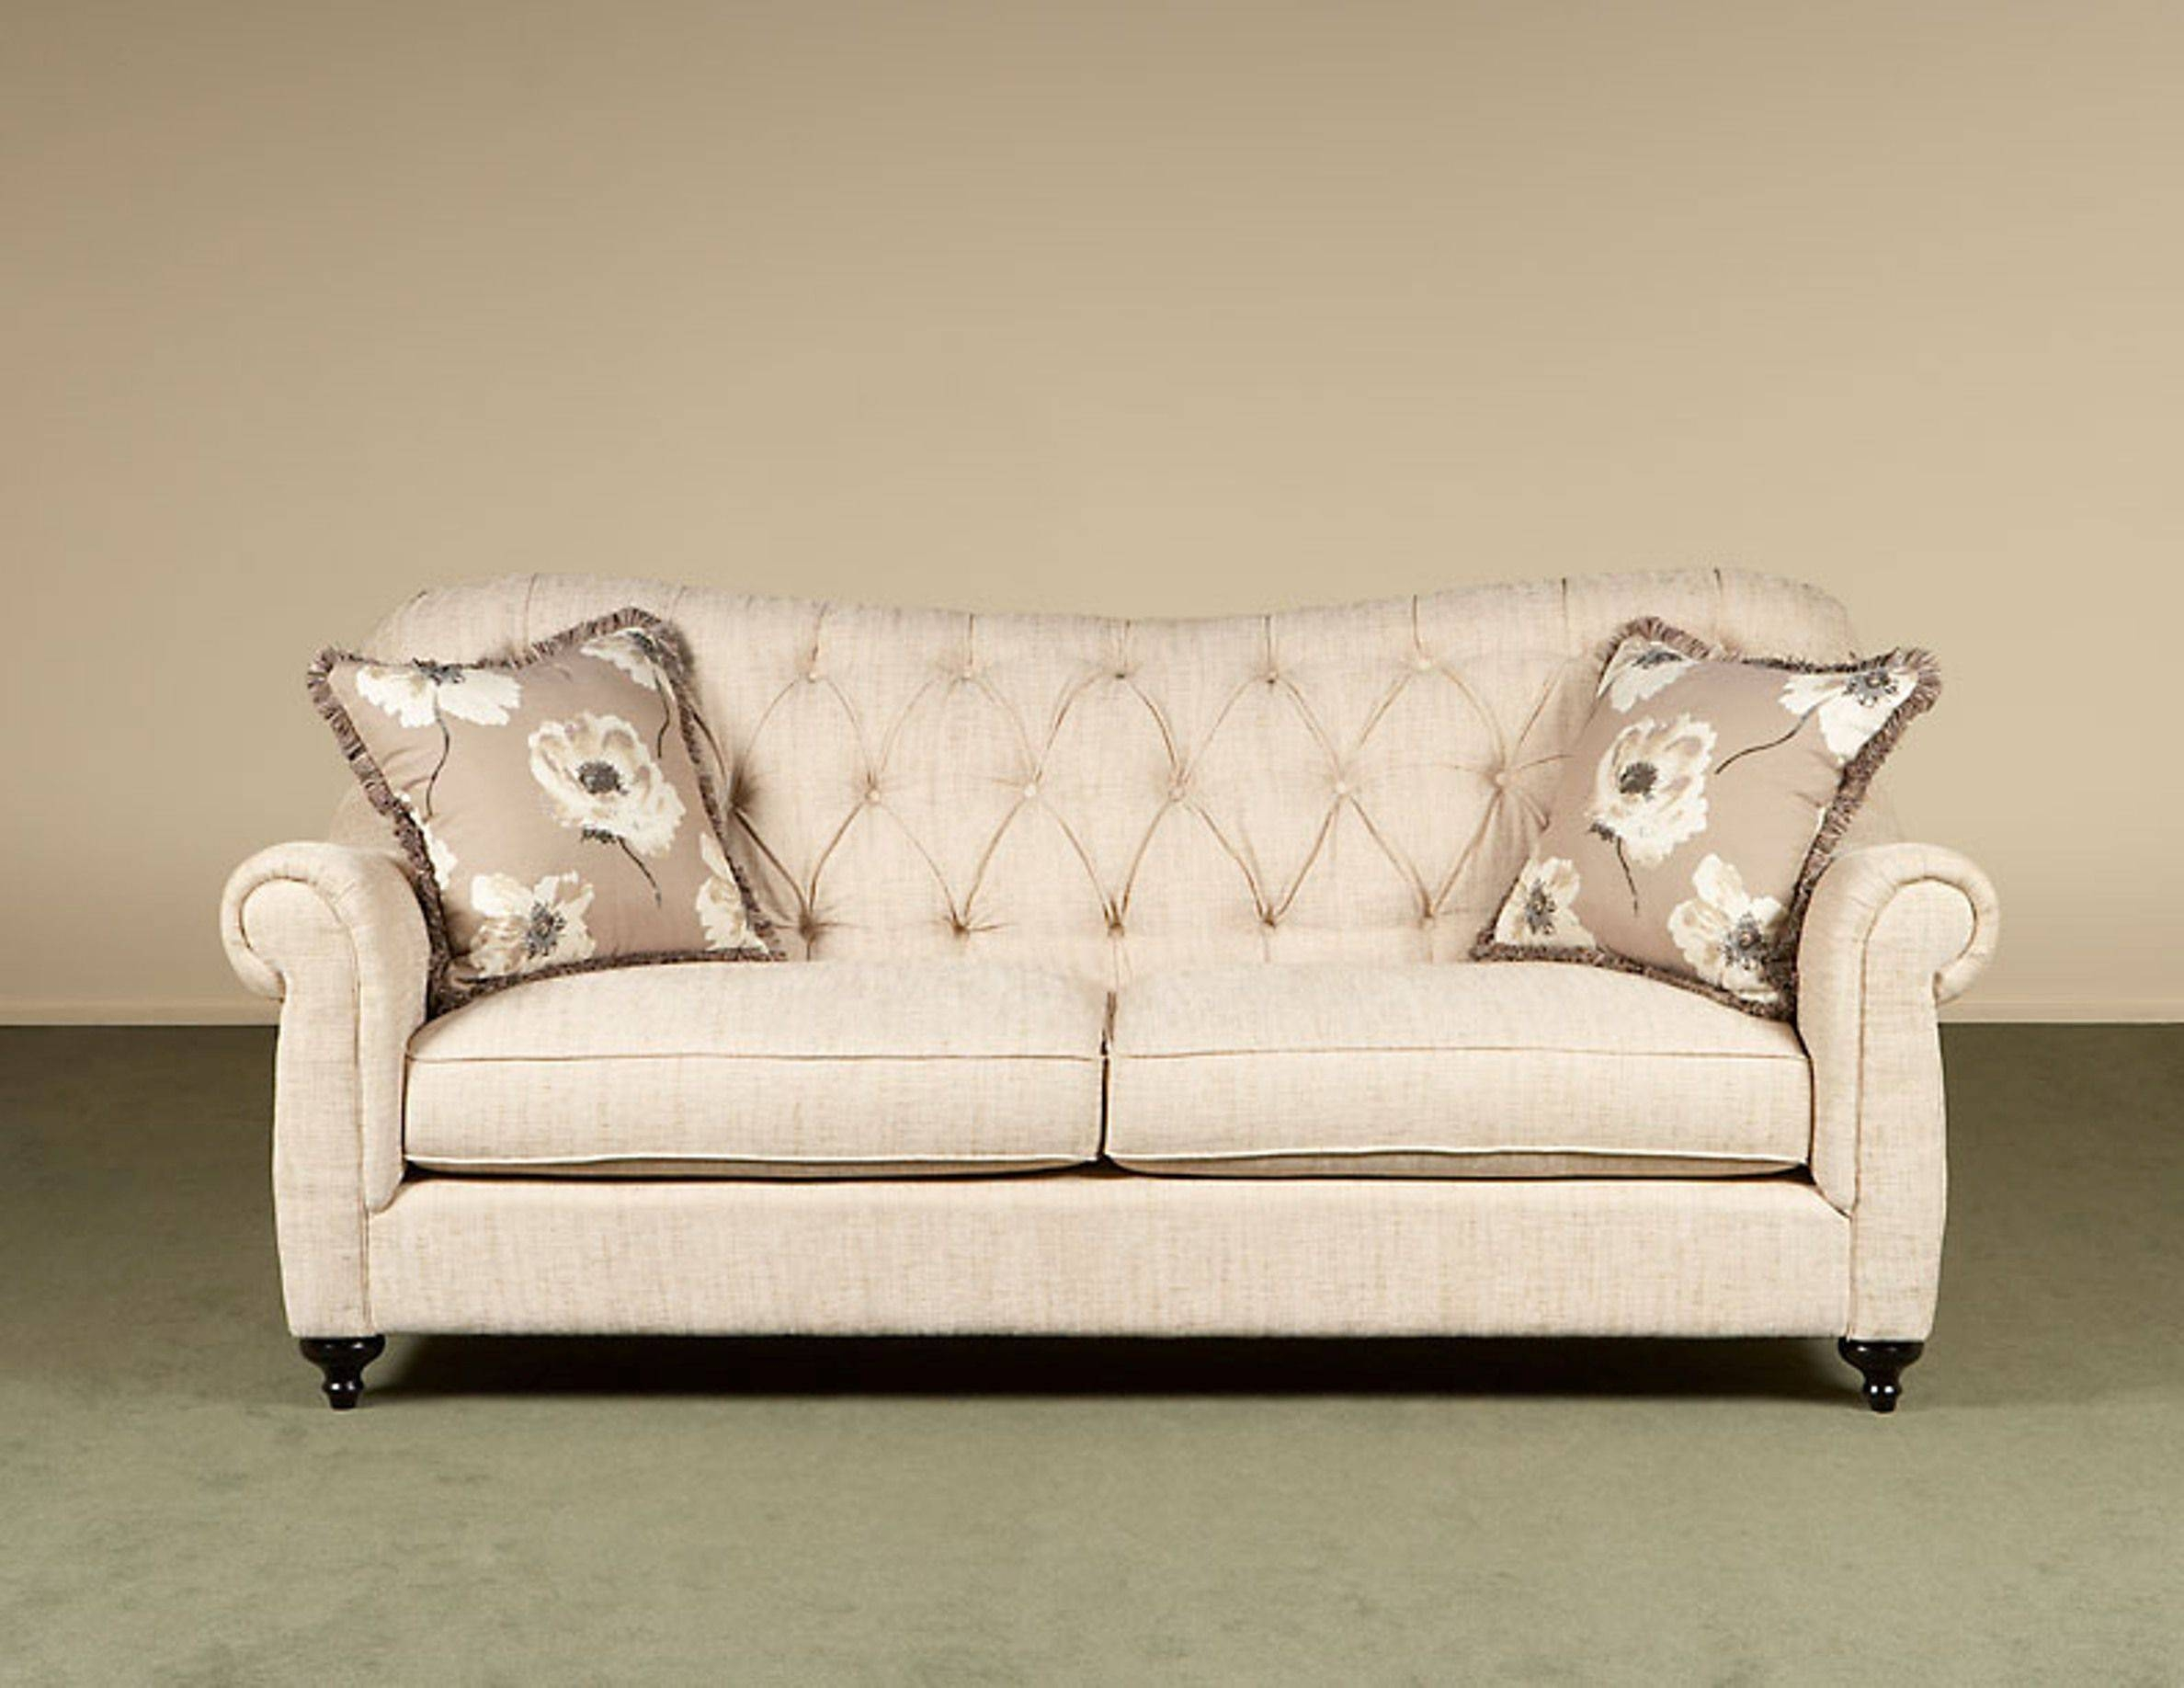 Sectional Sofas Cincinnati And Nolan Reclining Sofa | Furniture In Sofas Cincinnati (View 20 of 25)